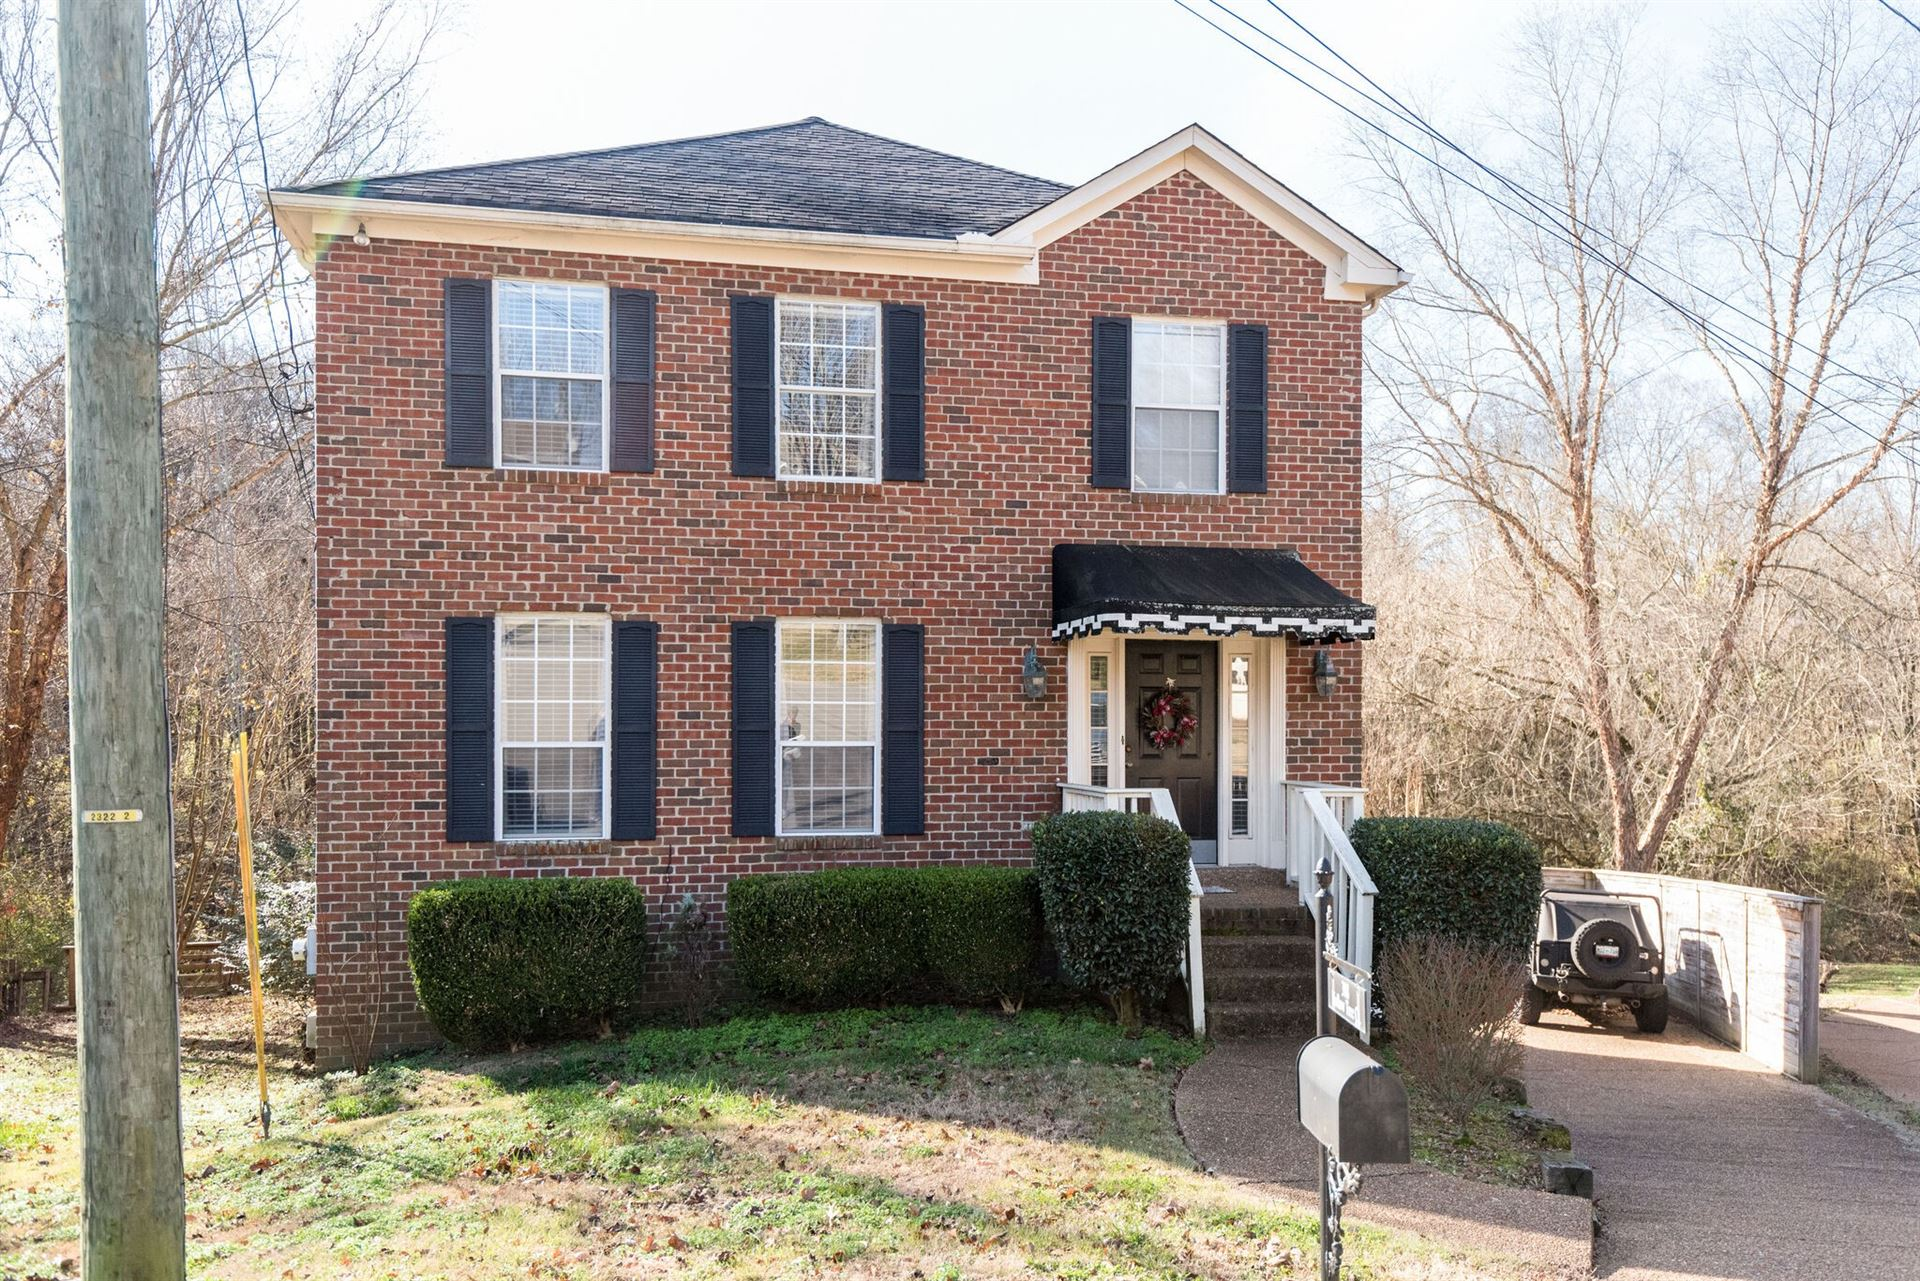 308 Hollow Tree Ct, Nashville, TN 37221 - MLS#: 2215944